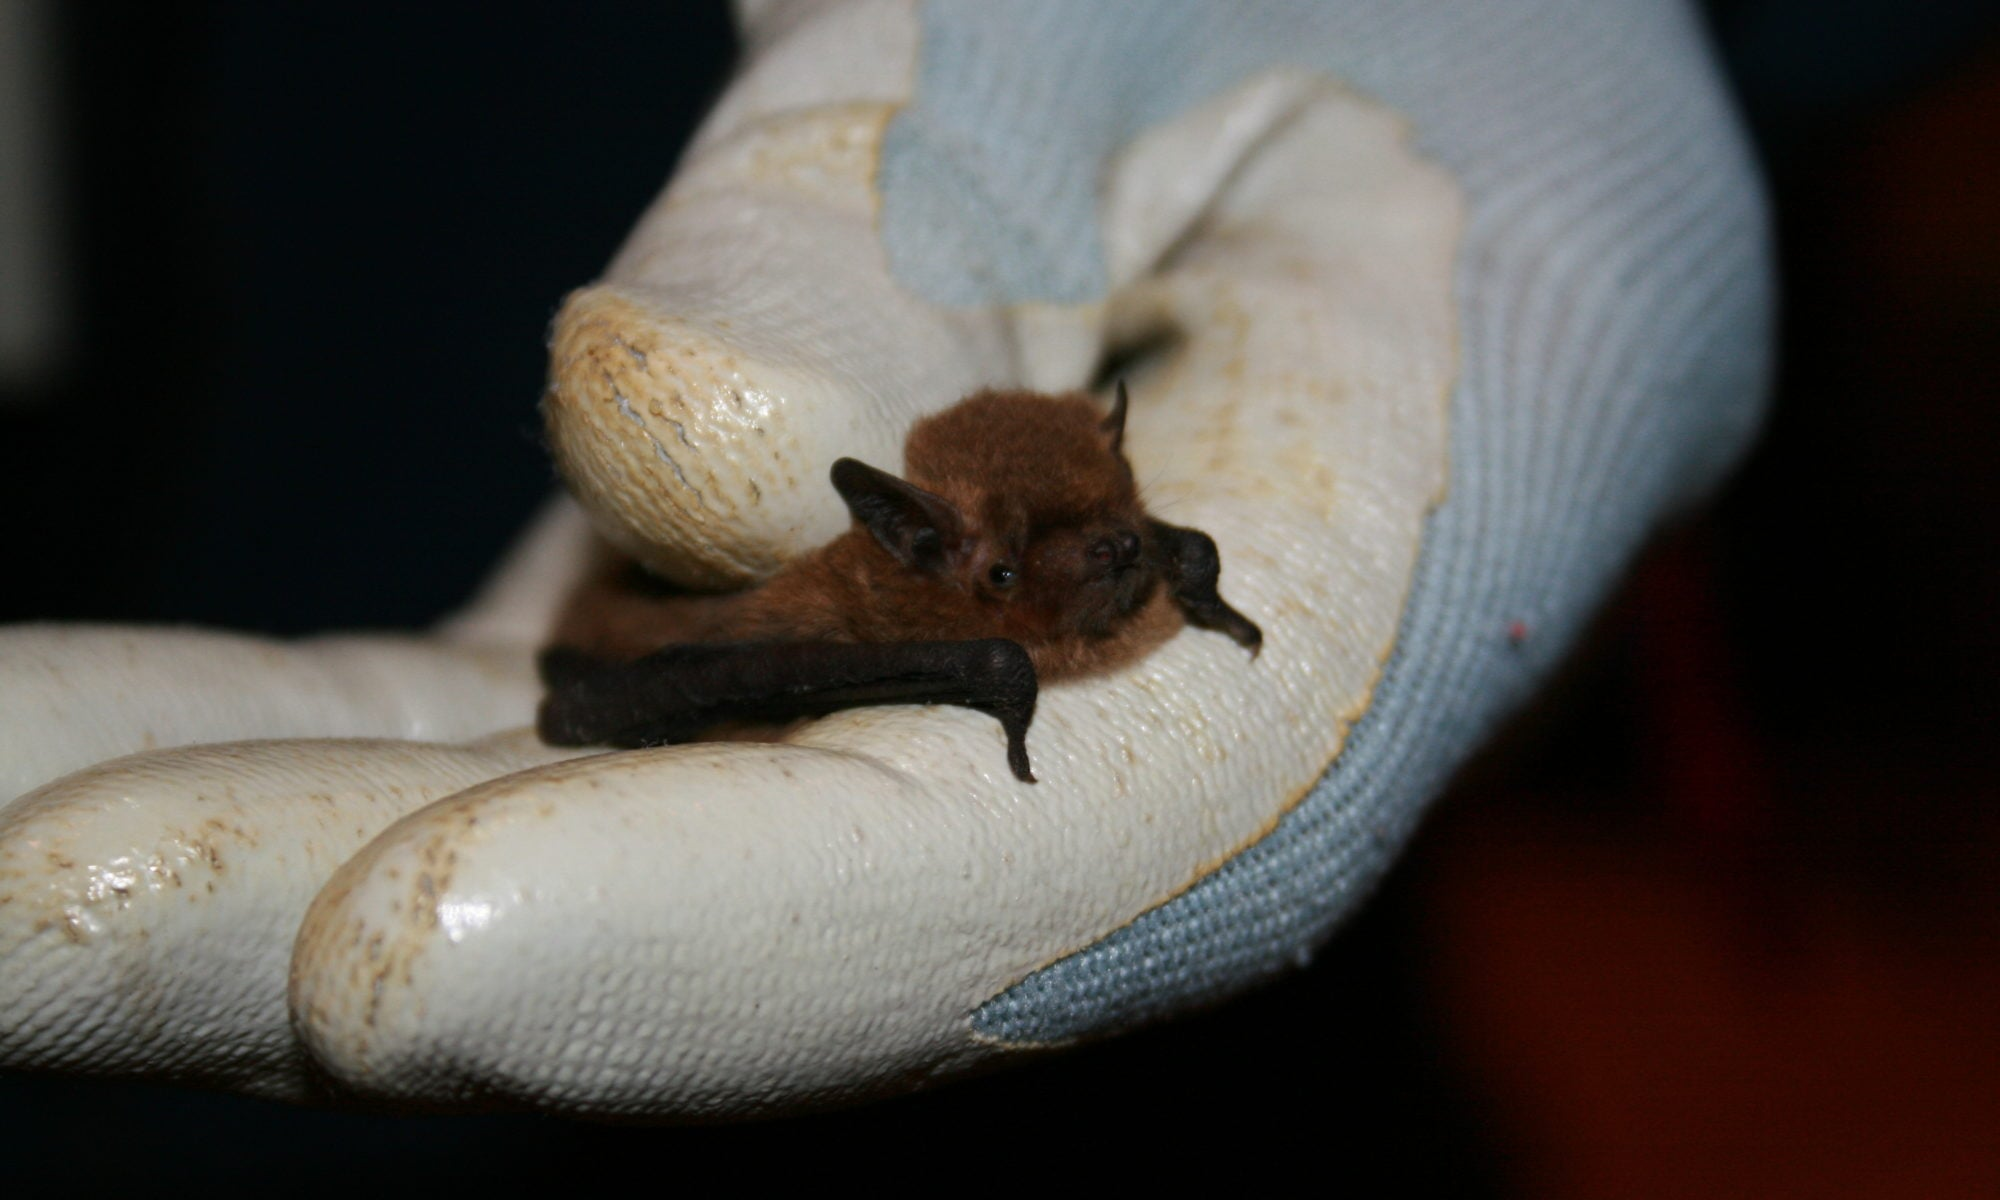 Bat caught during a survey in County Fermanagh